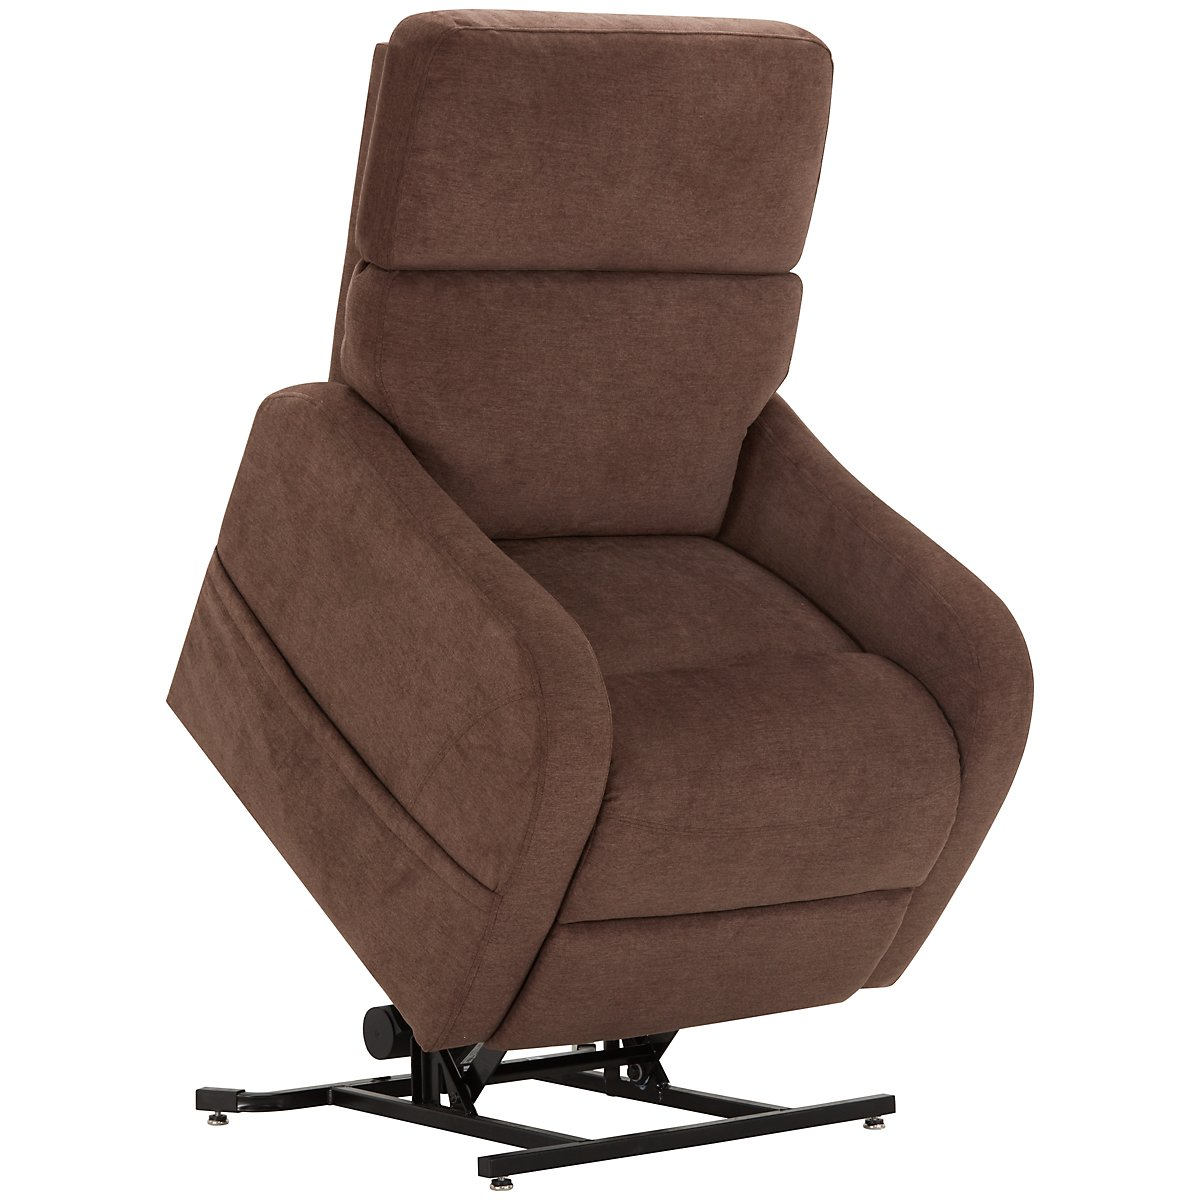 Nora Brown Fabric Power Lift Recliner